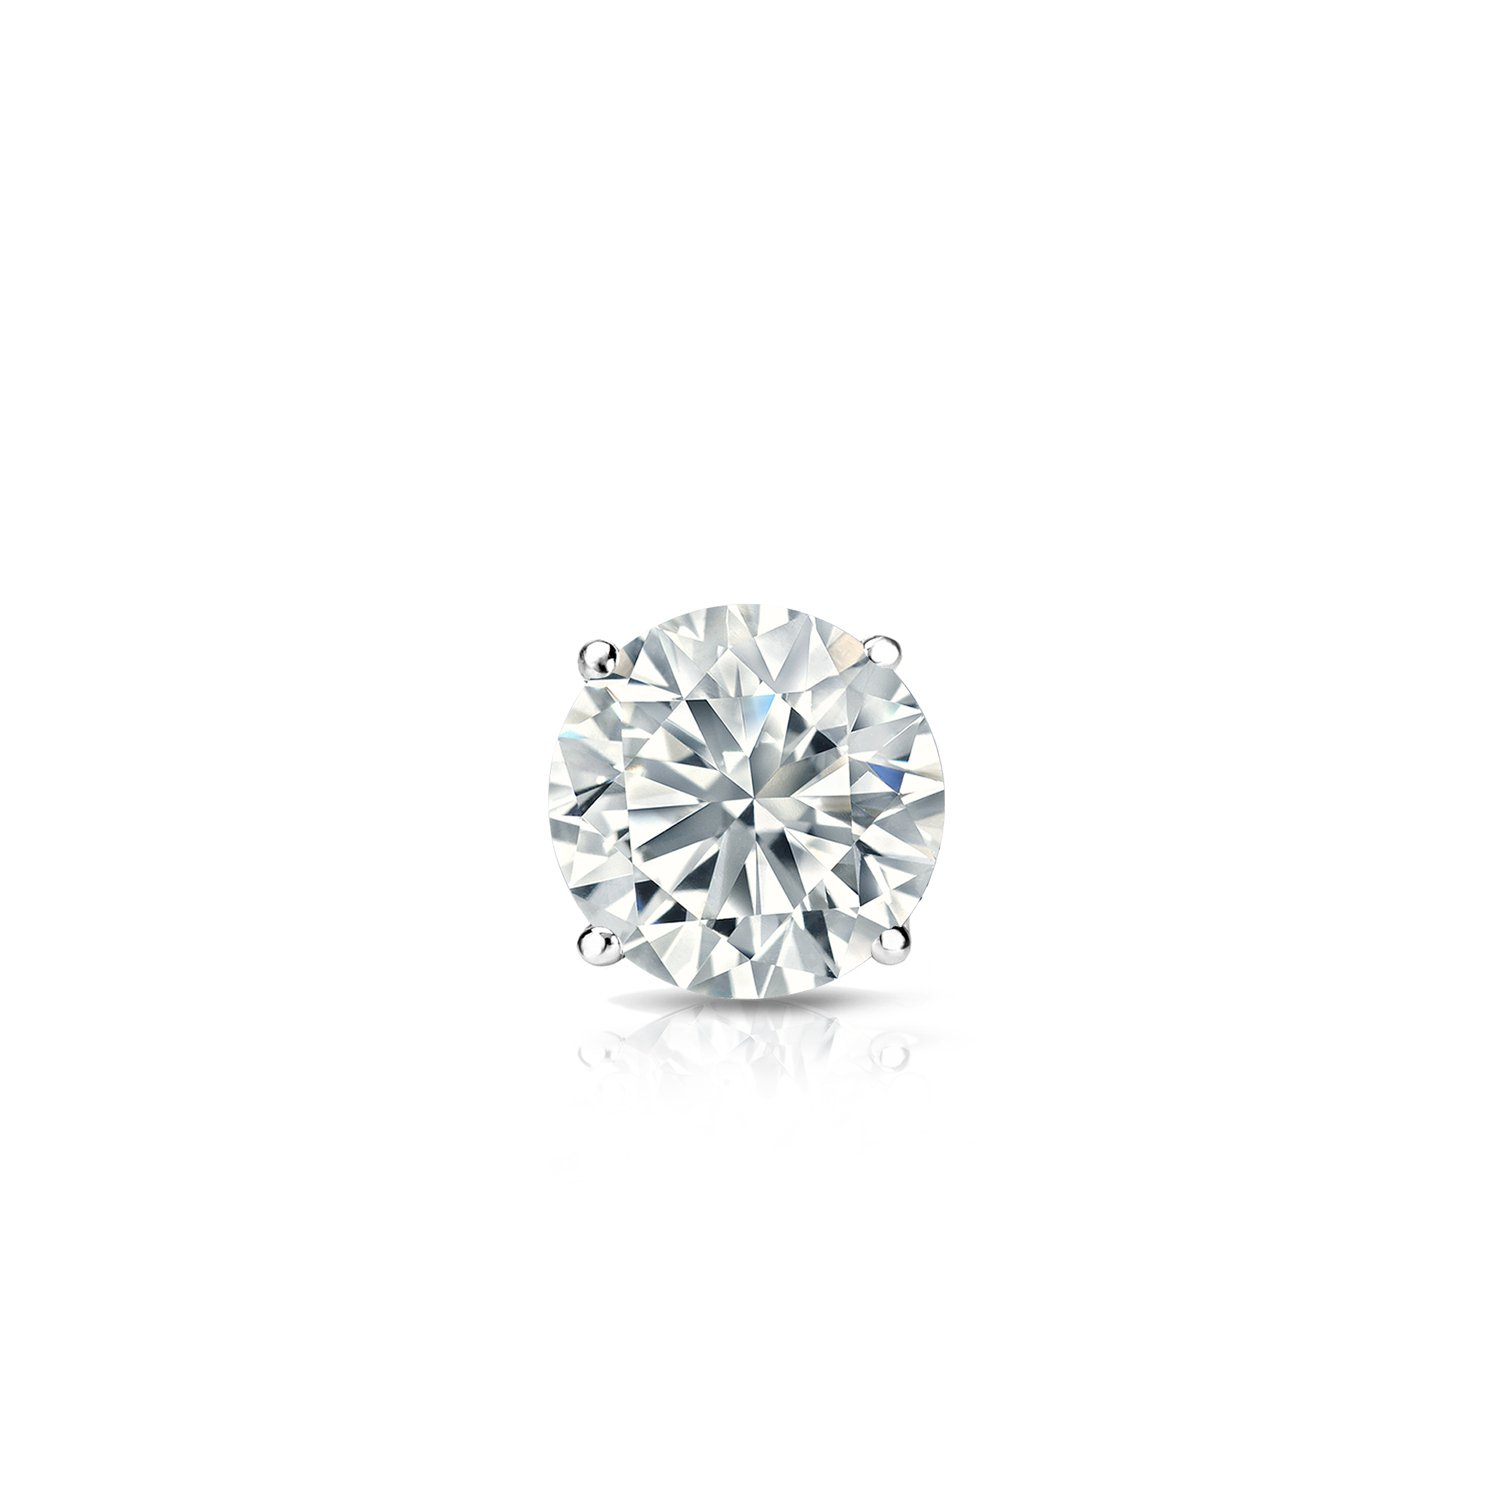 1//8-1cttw,Excellent Quality 14k White Gold Round Diamond Simulant CZ SINGLE STUD Earring 4-Prong